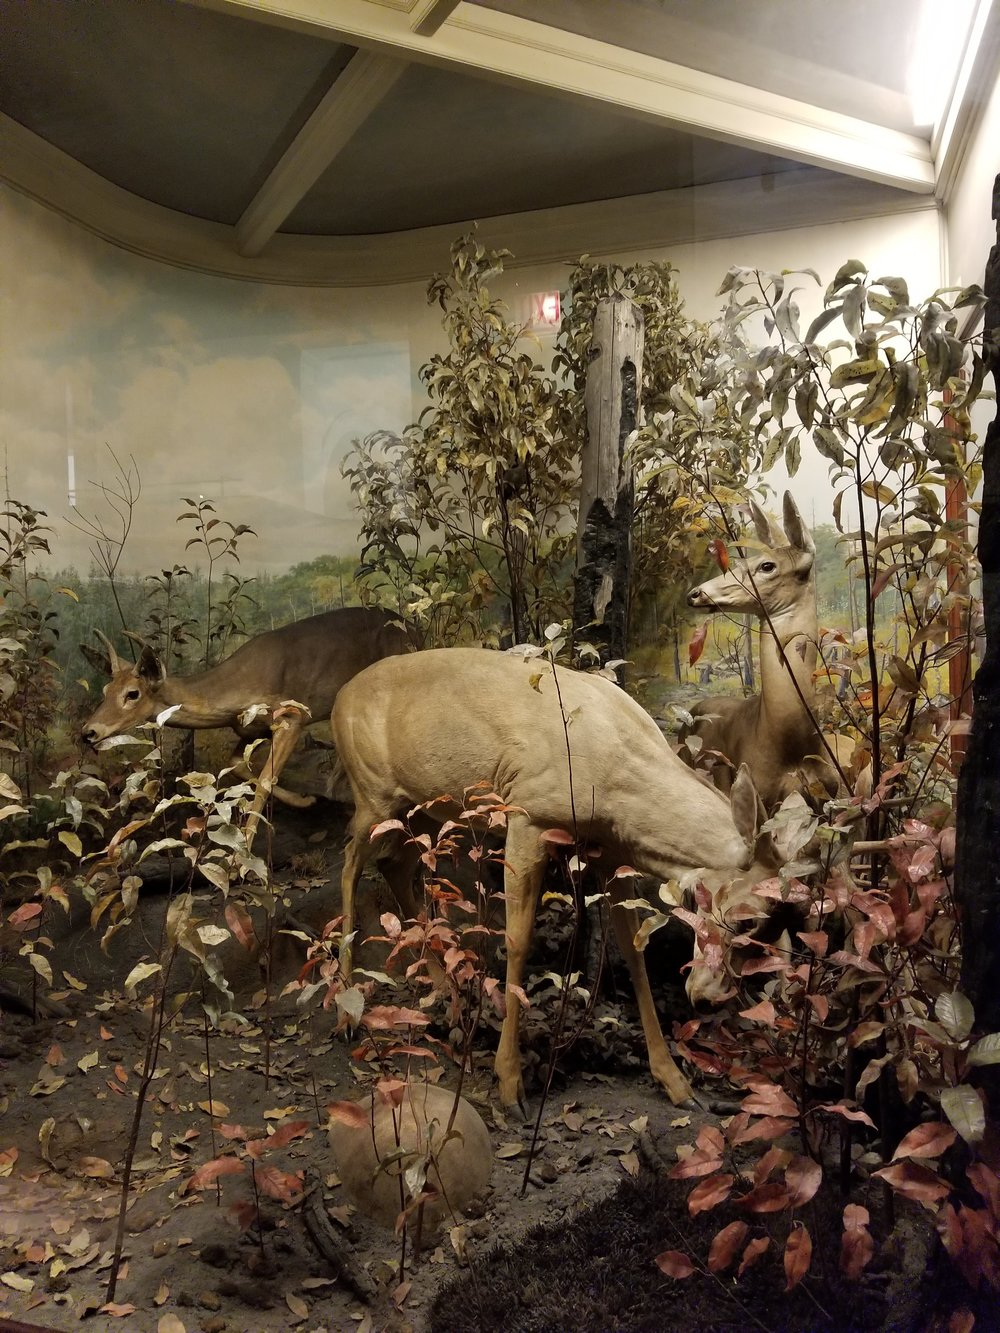 I love to see these diorama exhibits at natural history museums. The realism of them is incredible, a moment frozen still. This one features 17,000 wax leaves cast from unique plaster molds of real leaves.